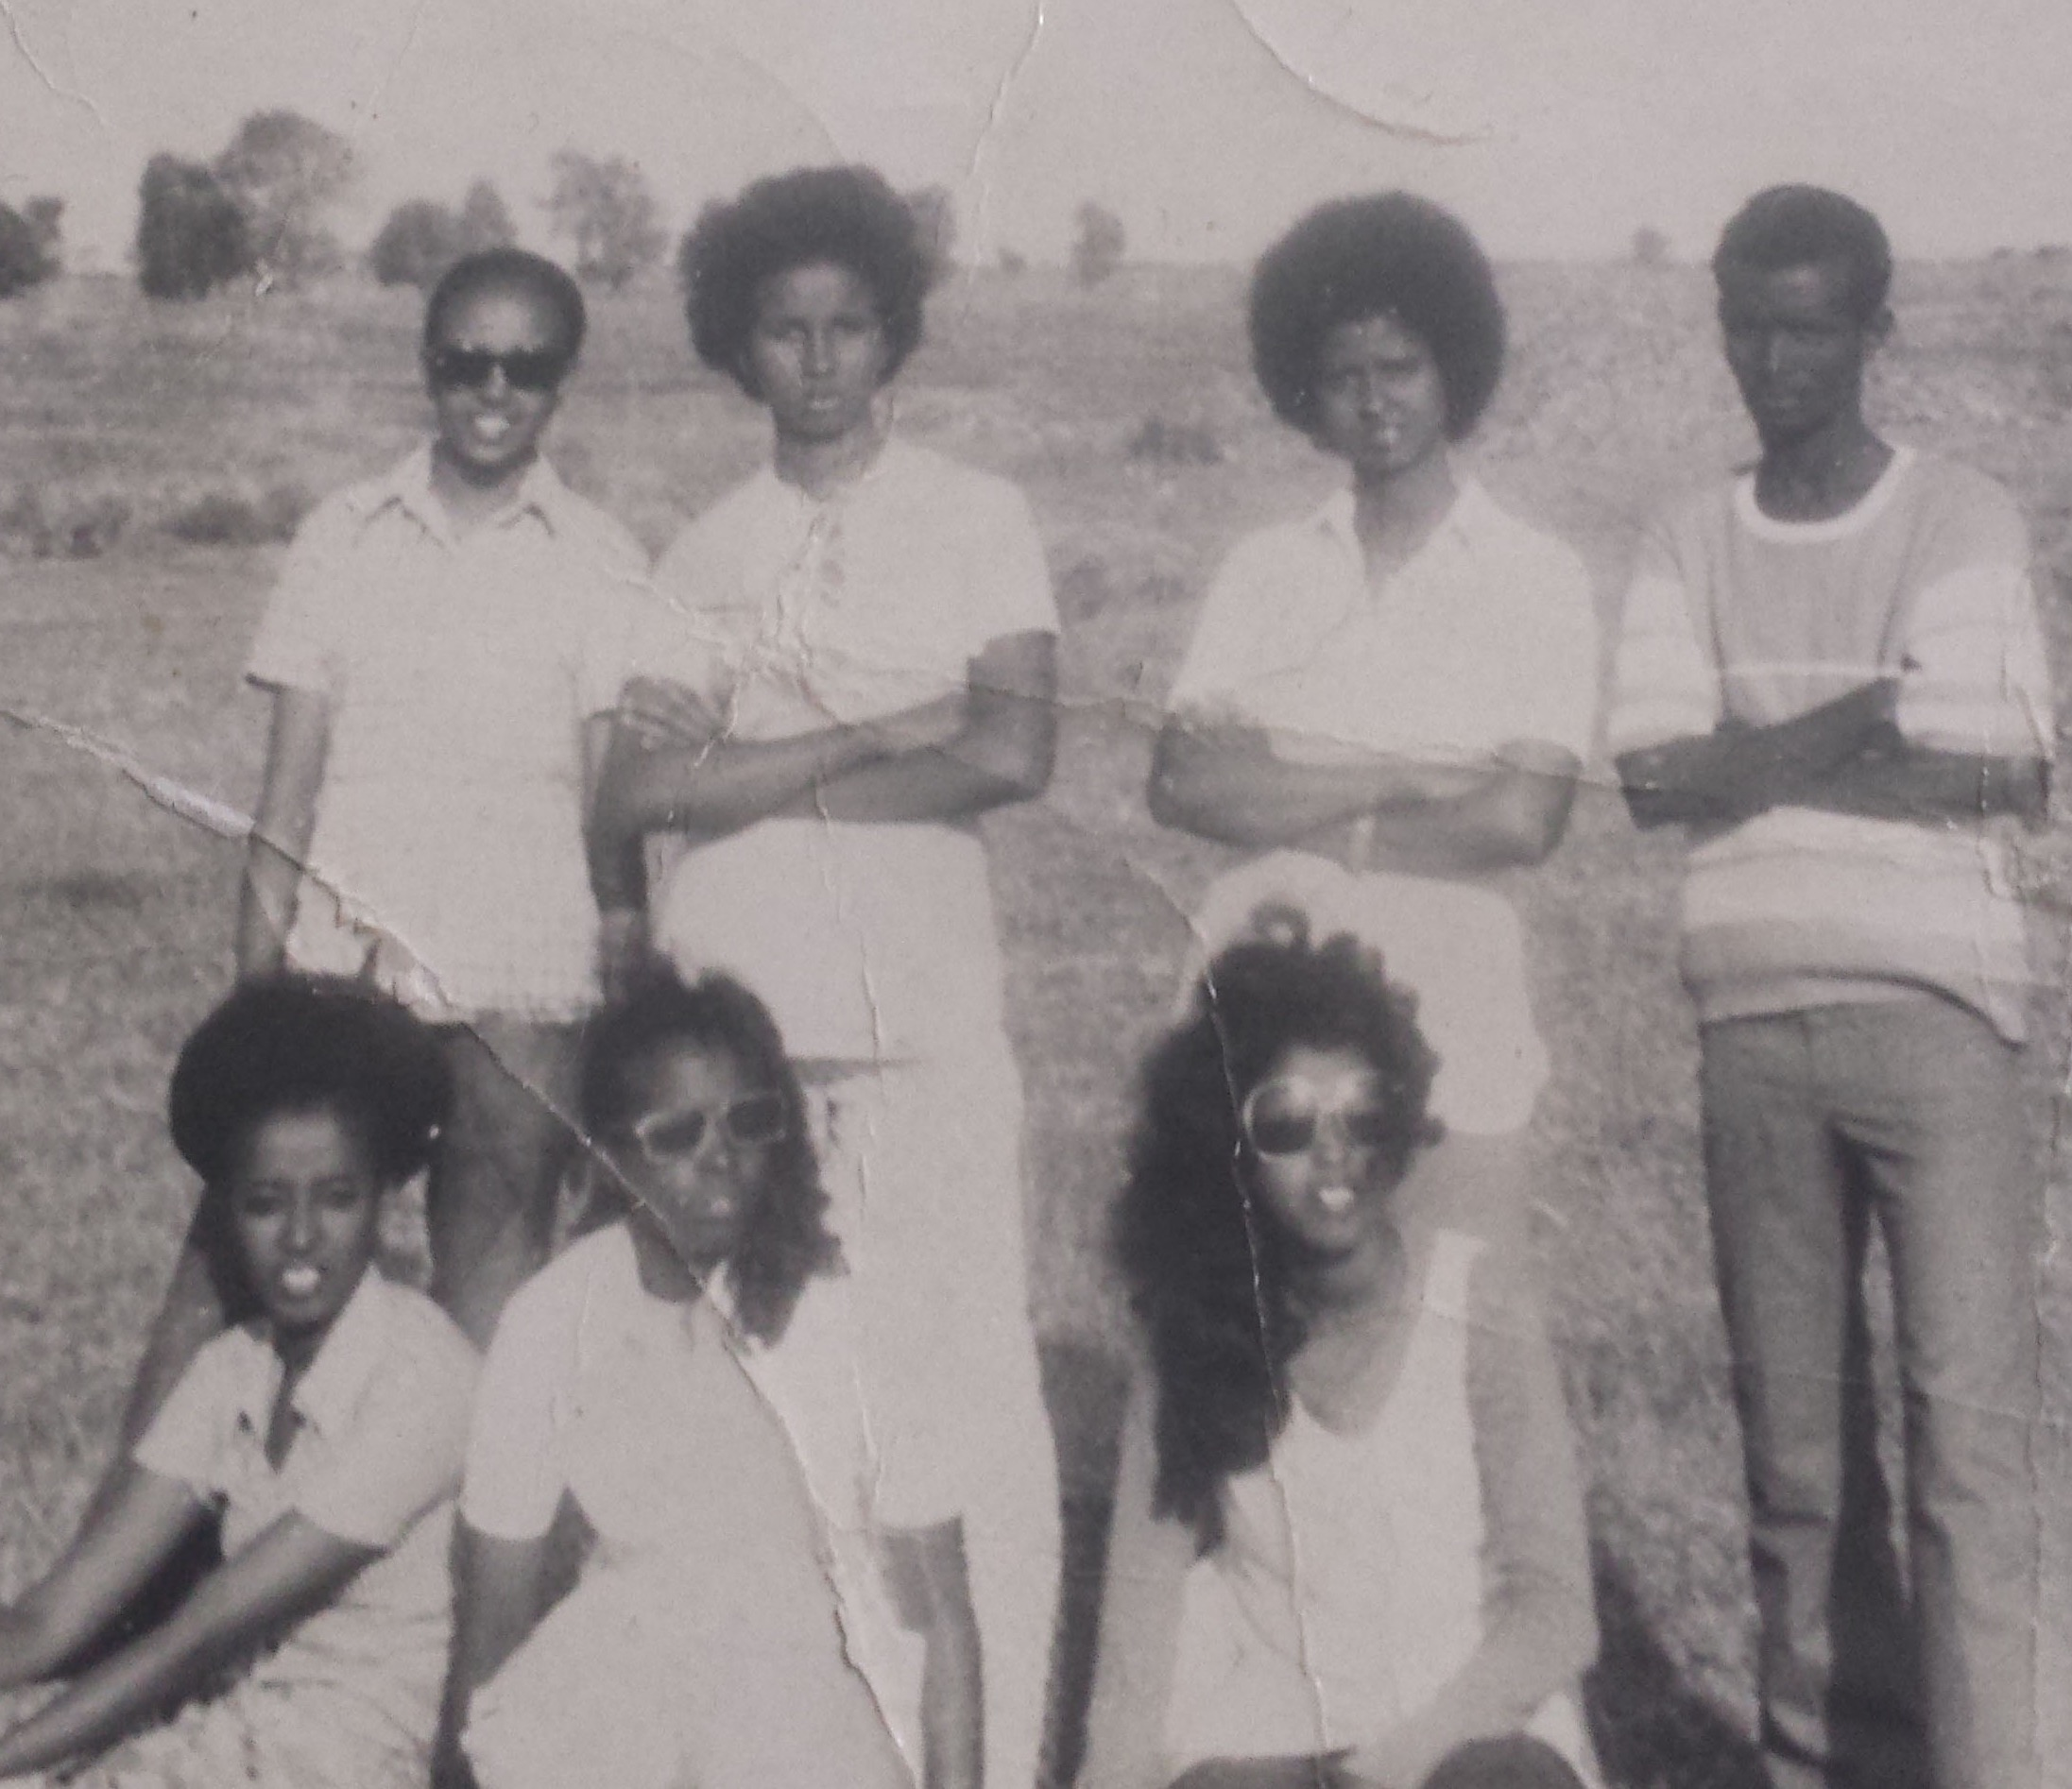 Shamis (standing, second from right) and friends teaching Somali script - 1974